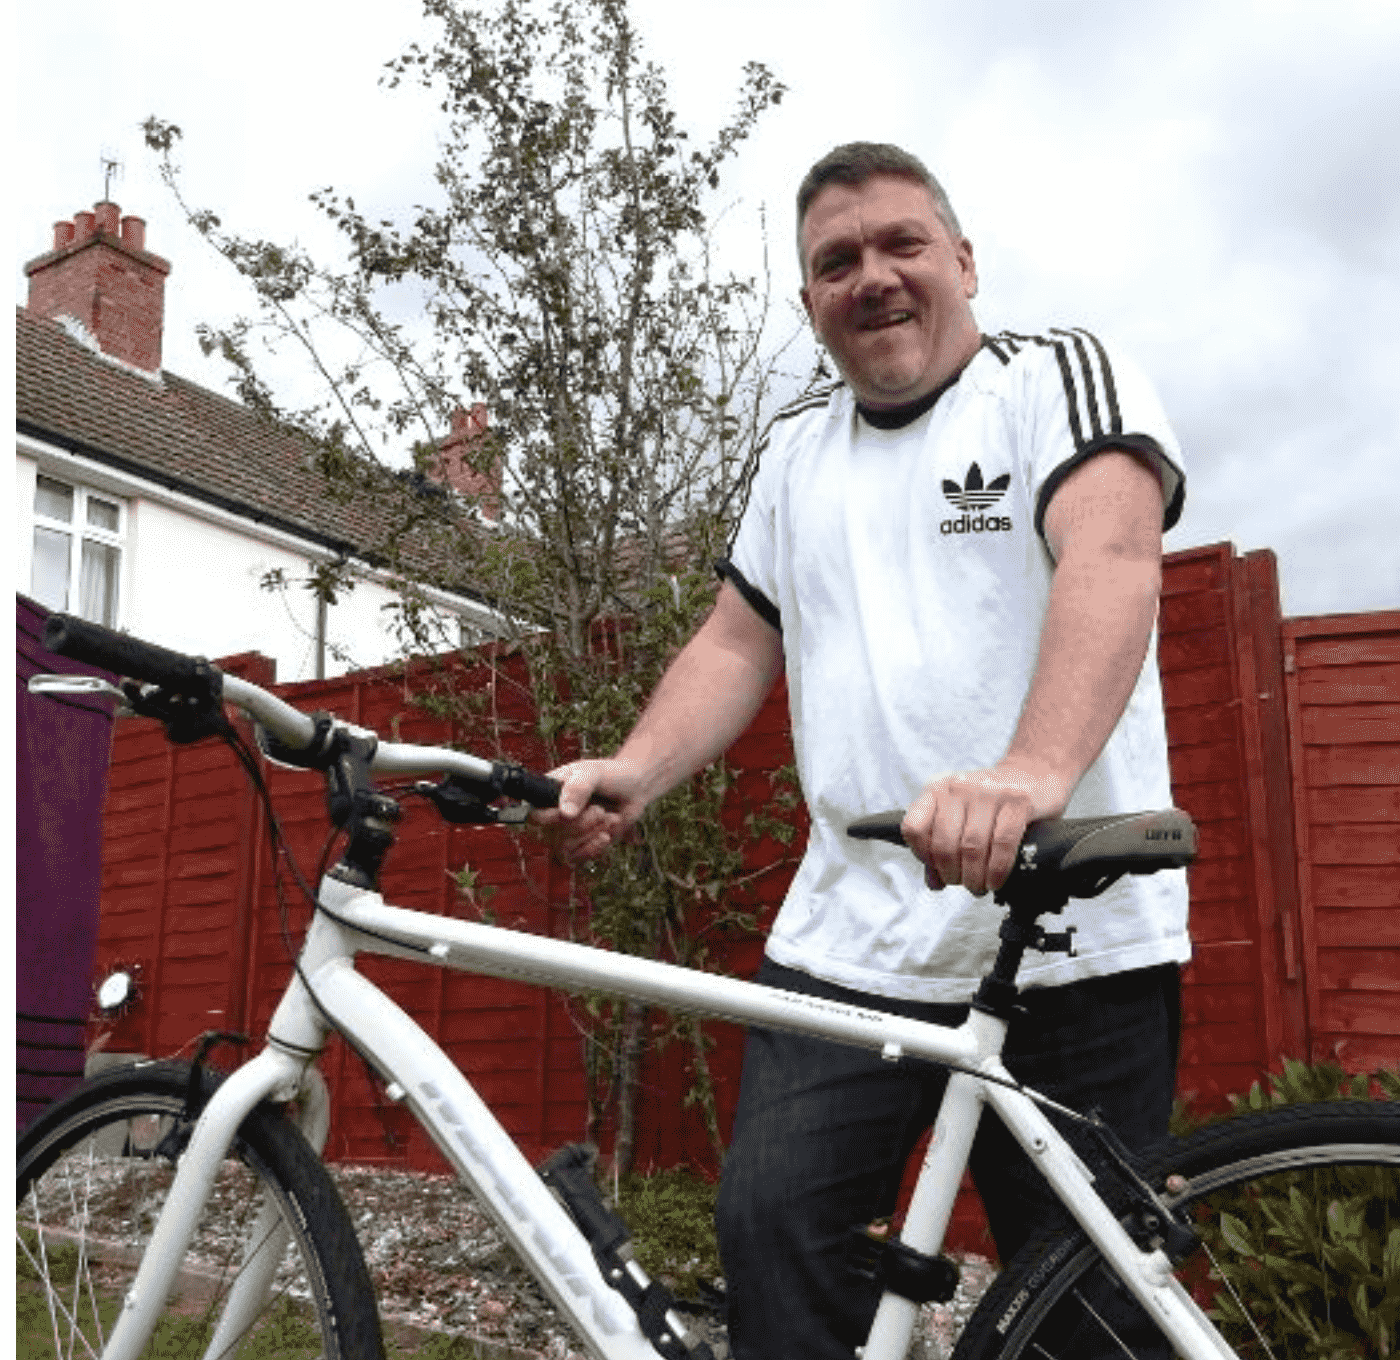 resident with his bike outside his house